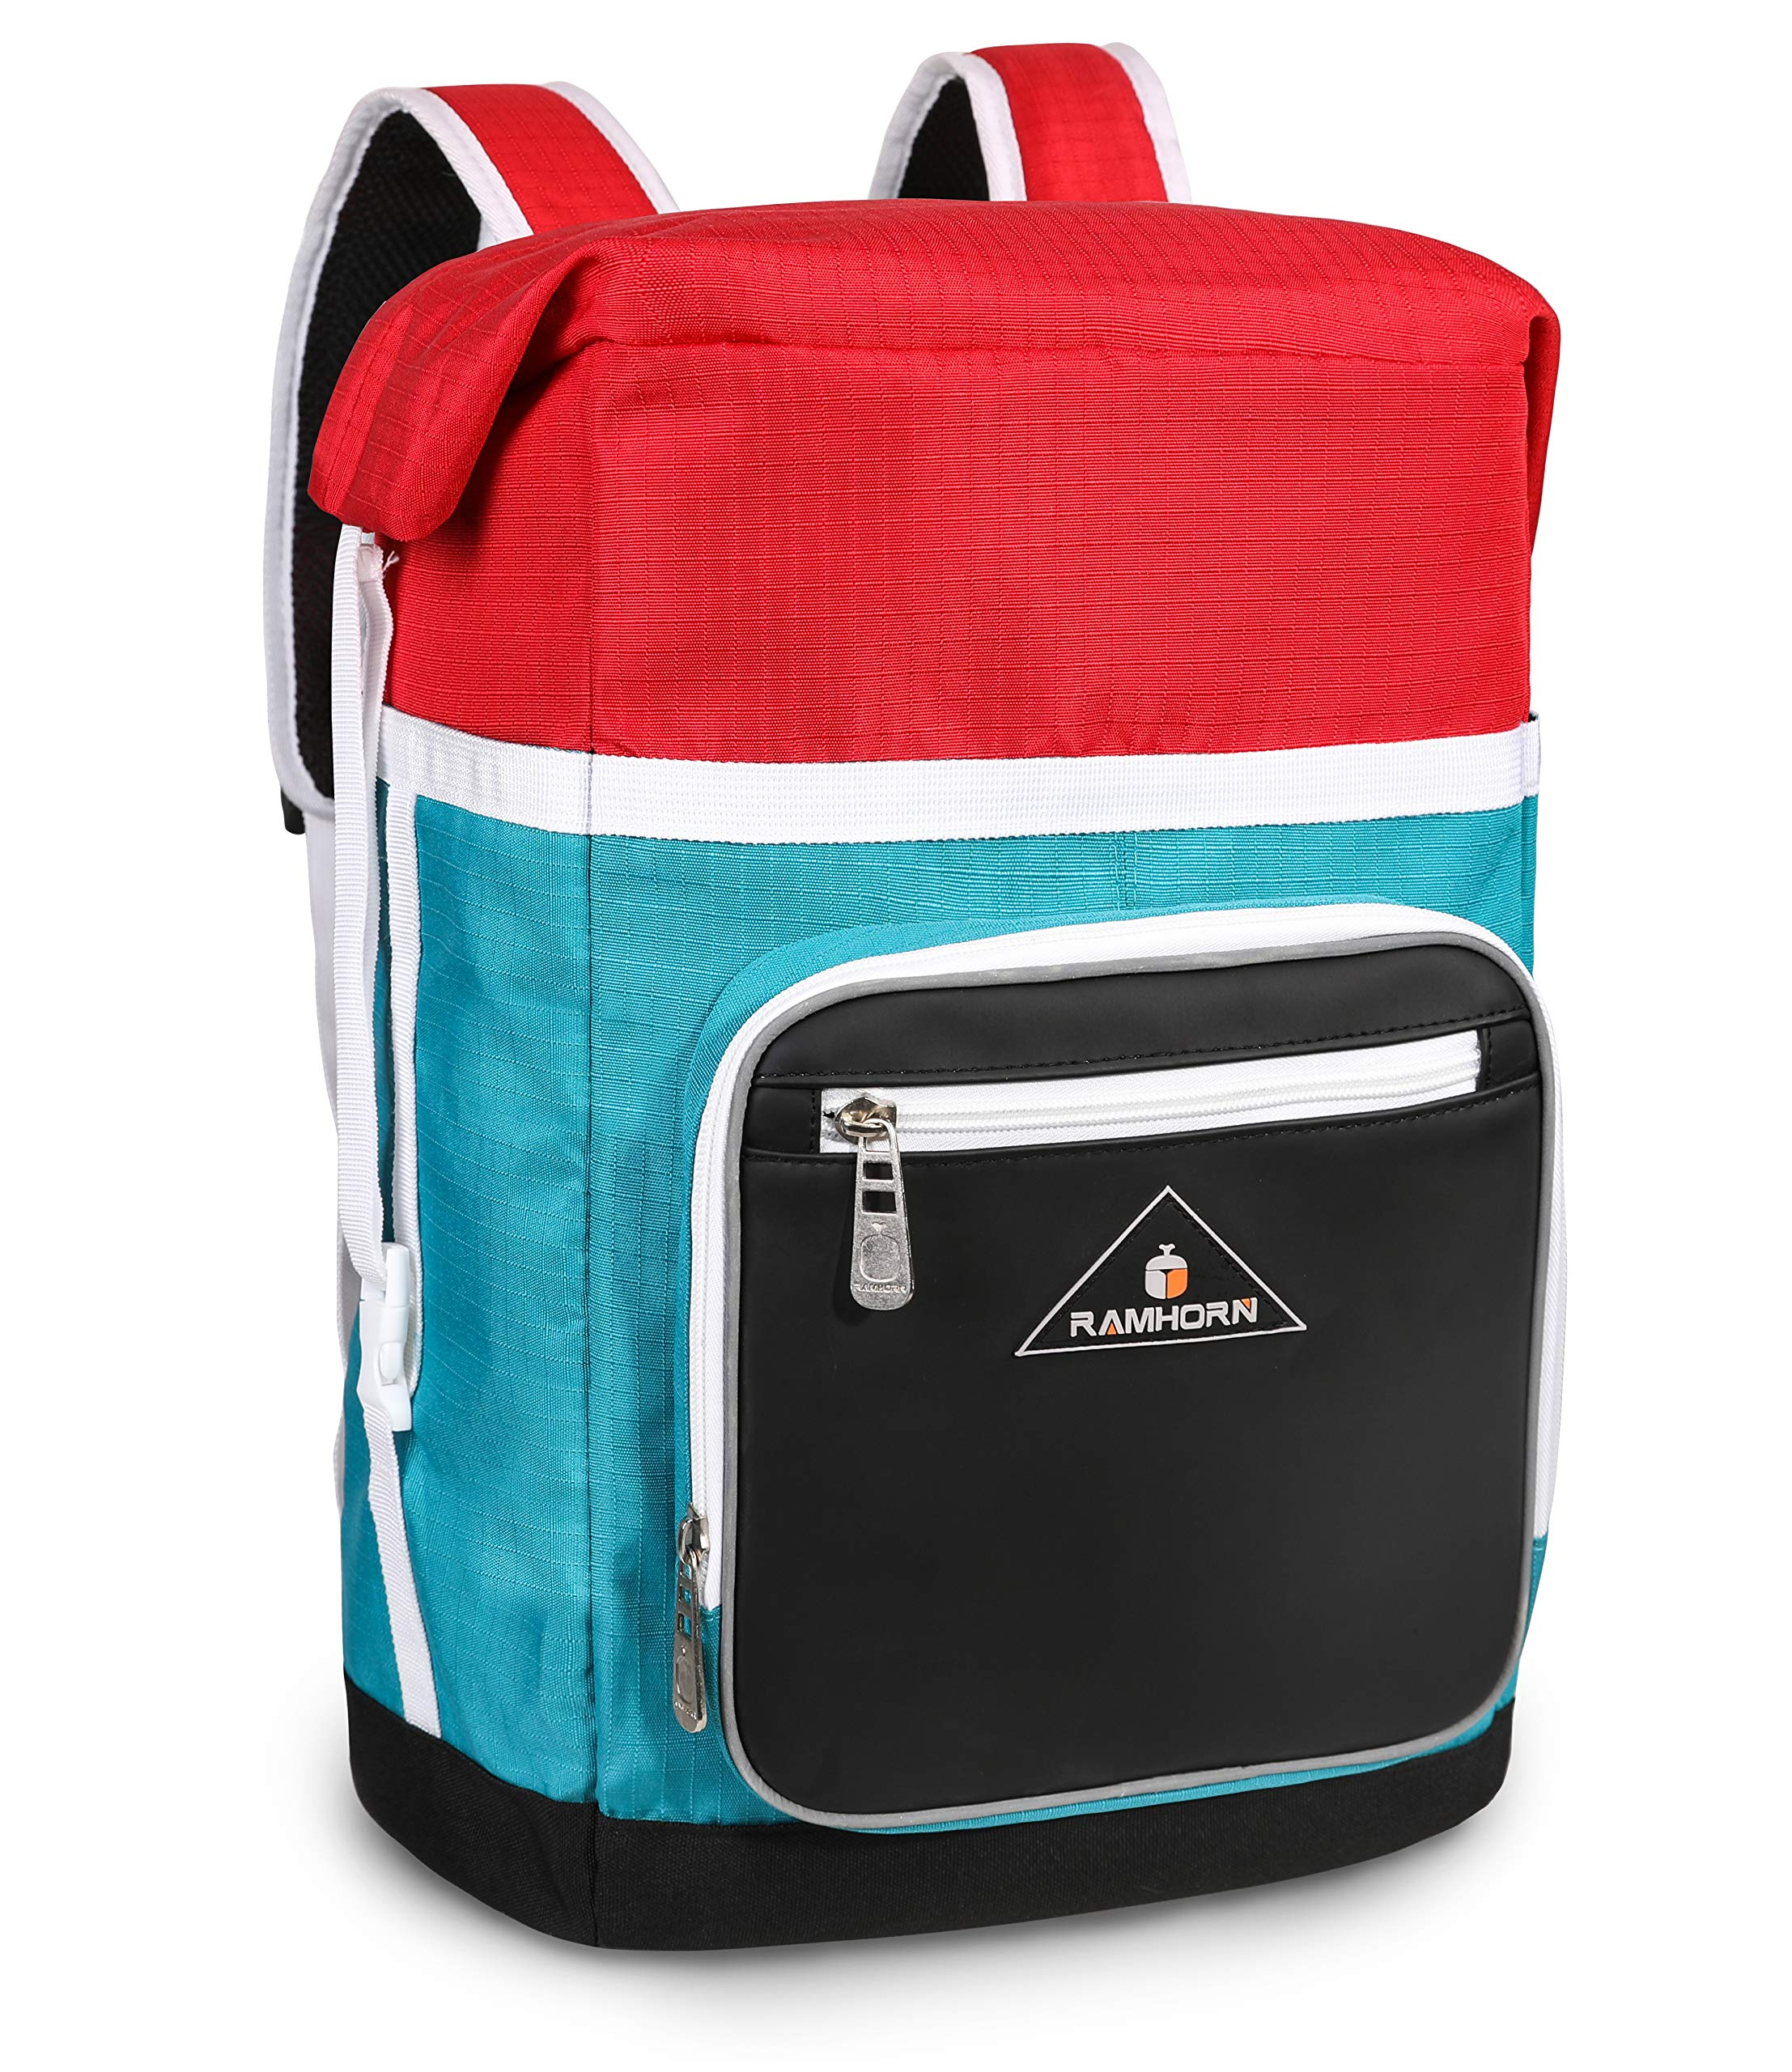 Casual Backpack Multipurpose Daypack Classic School Backpack Slim Lightweight Large Capacity Travel Laptop Bag for Men,Women, Teenagers, Student, Kids, by Ramhorn(Red and Blue))